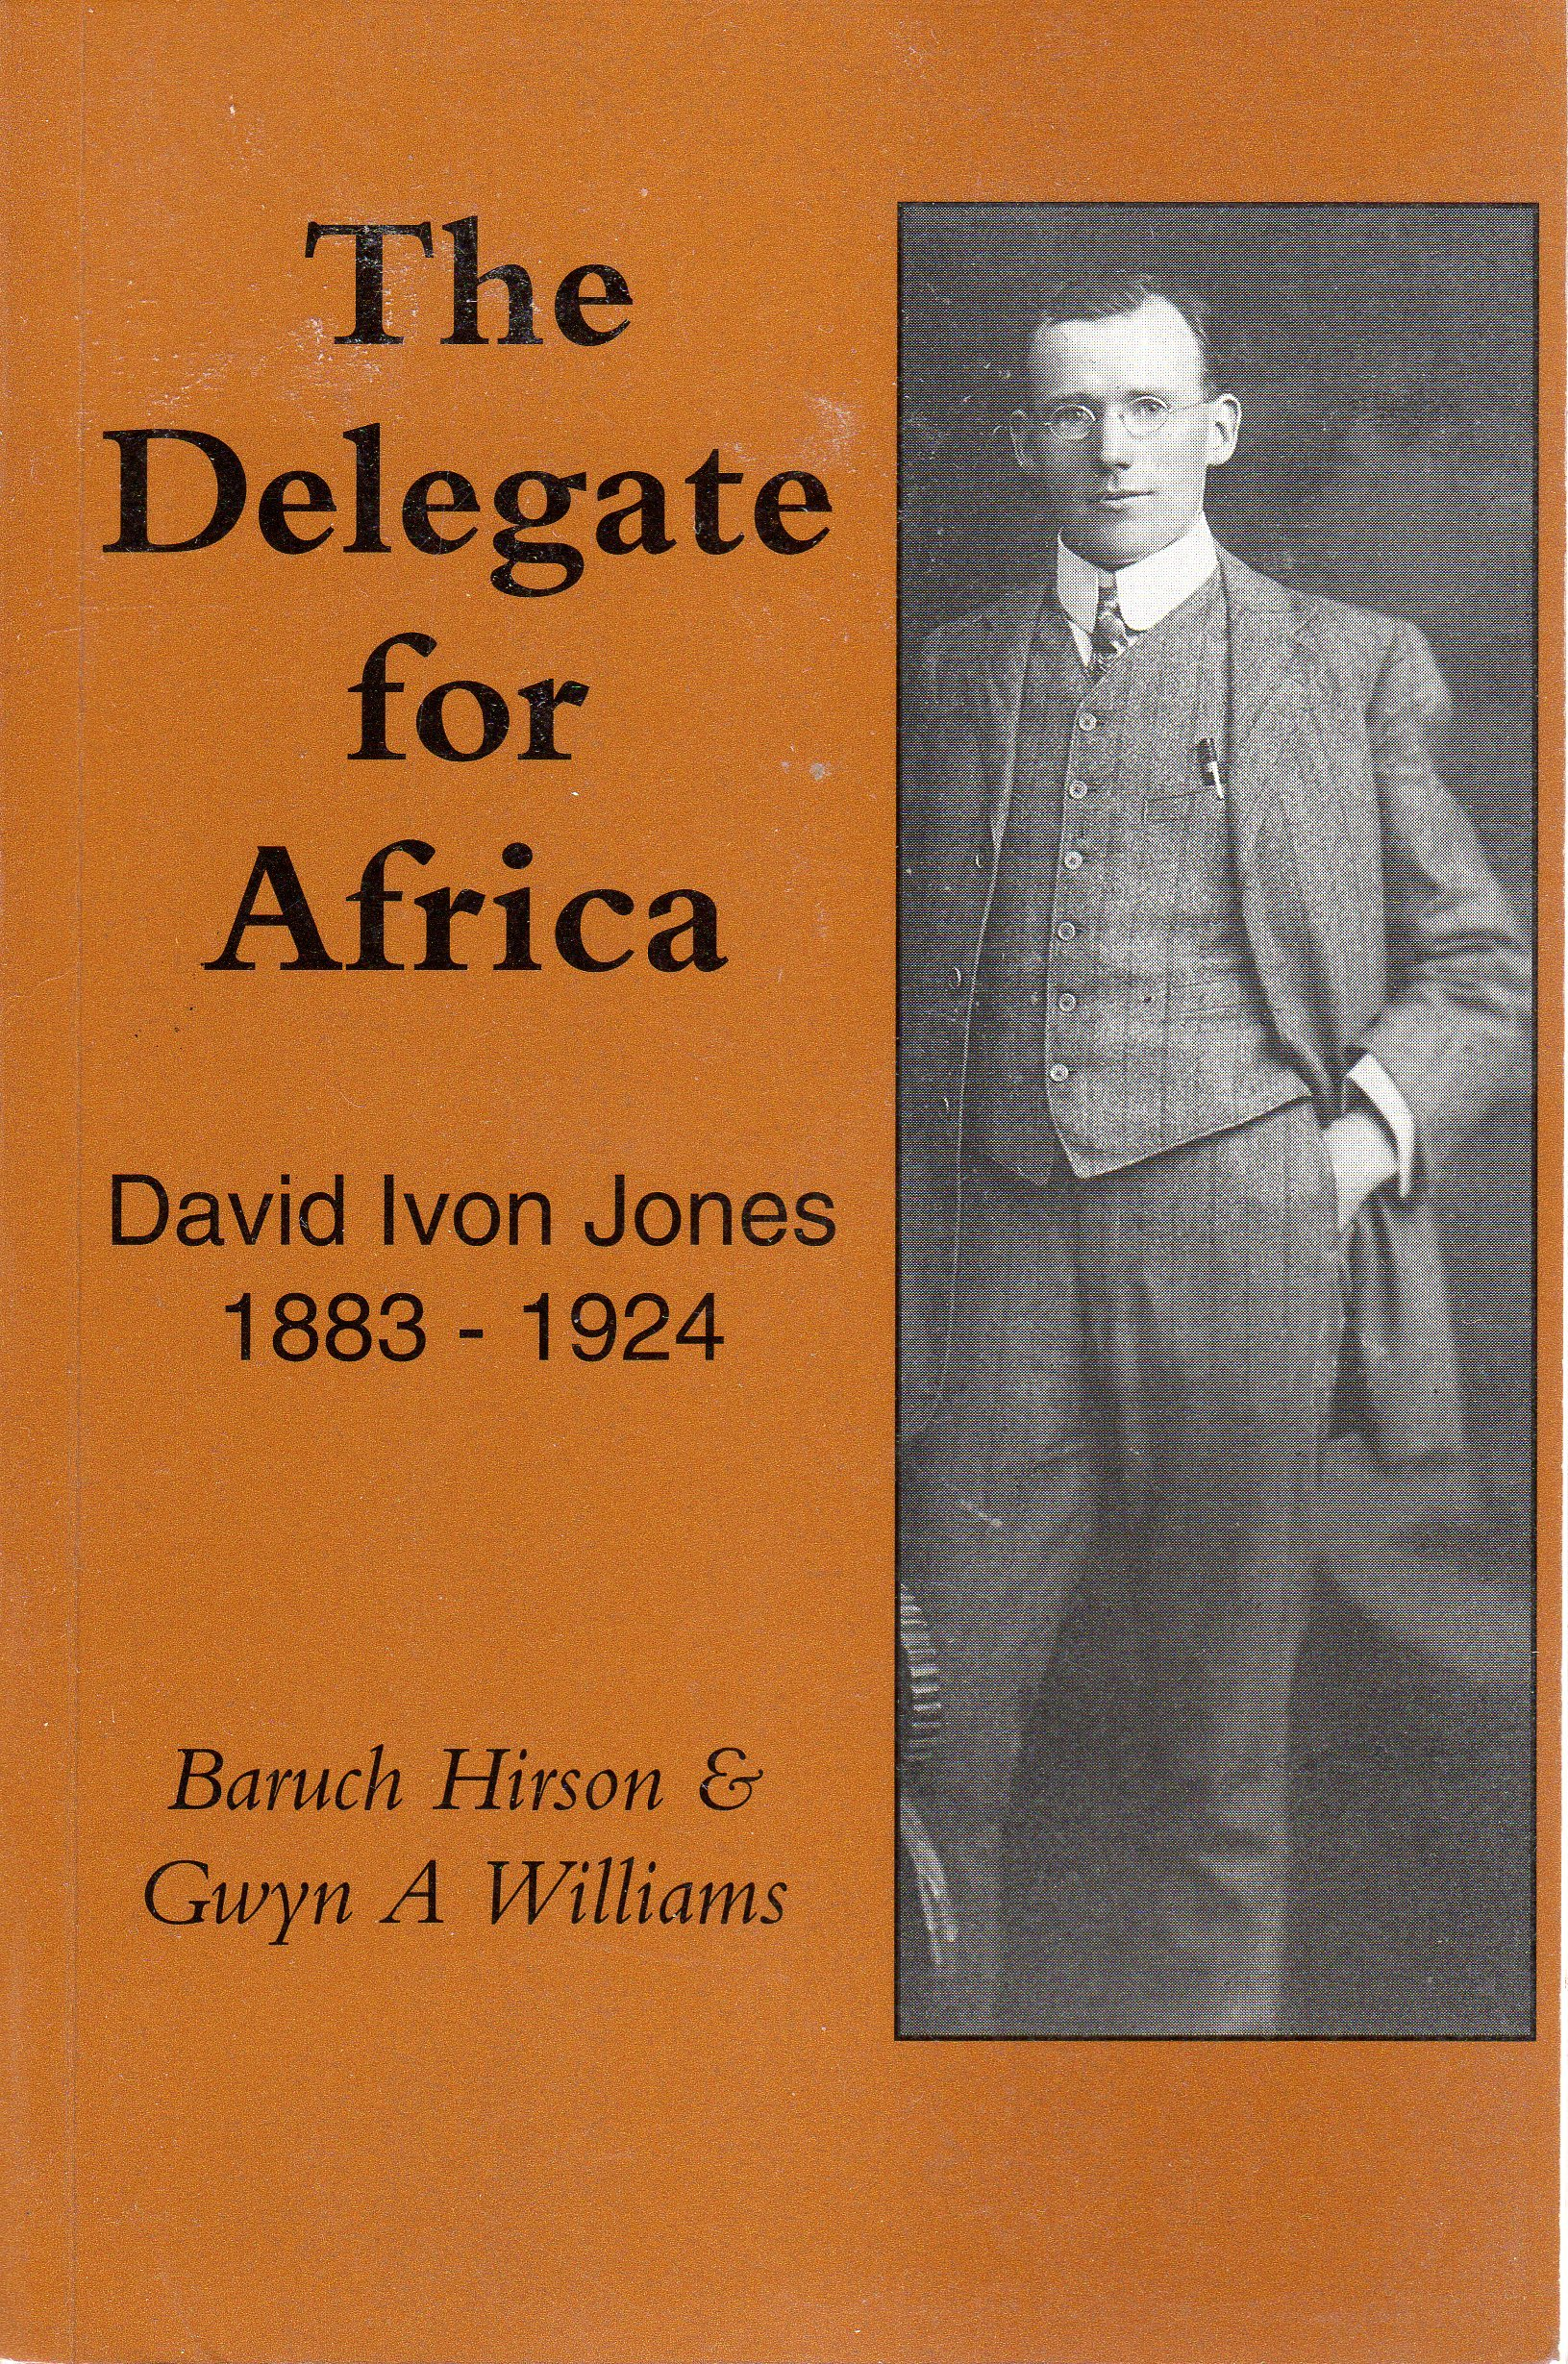 The Delegate for Africa